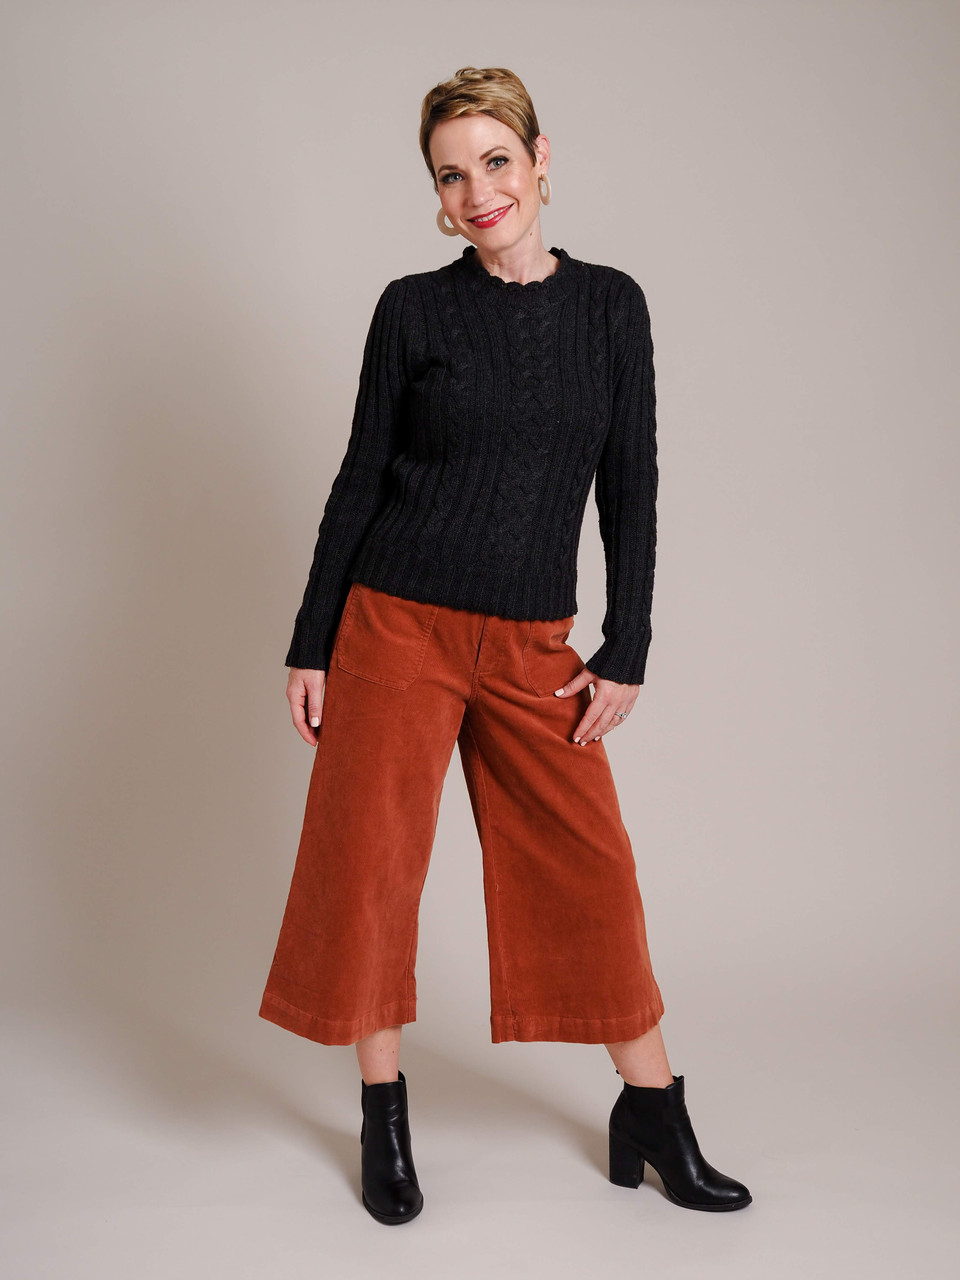 rust colored wide leg corduroy pants